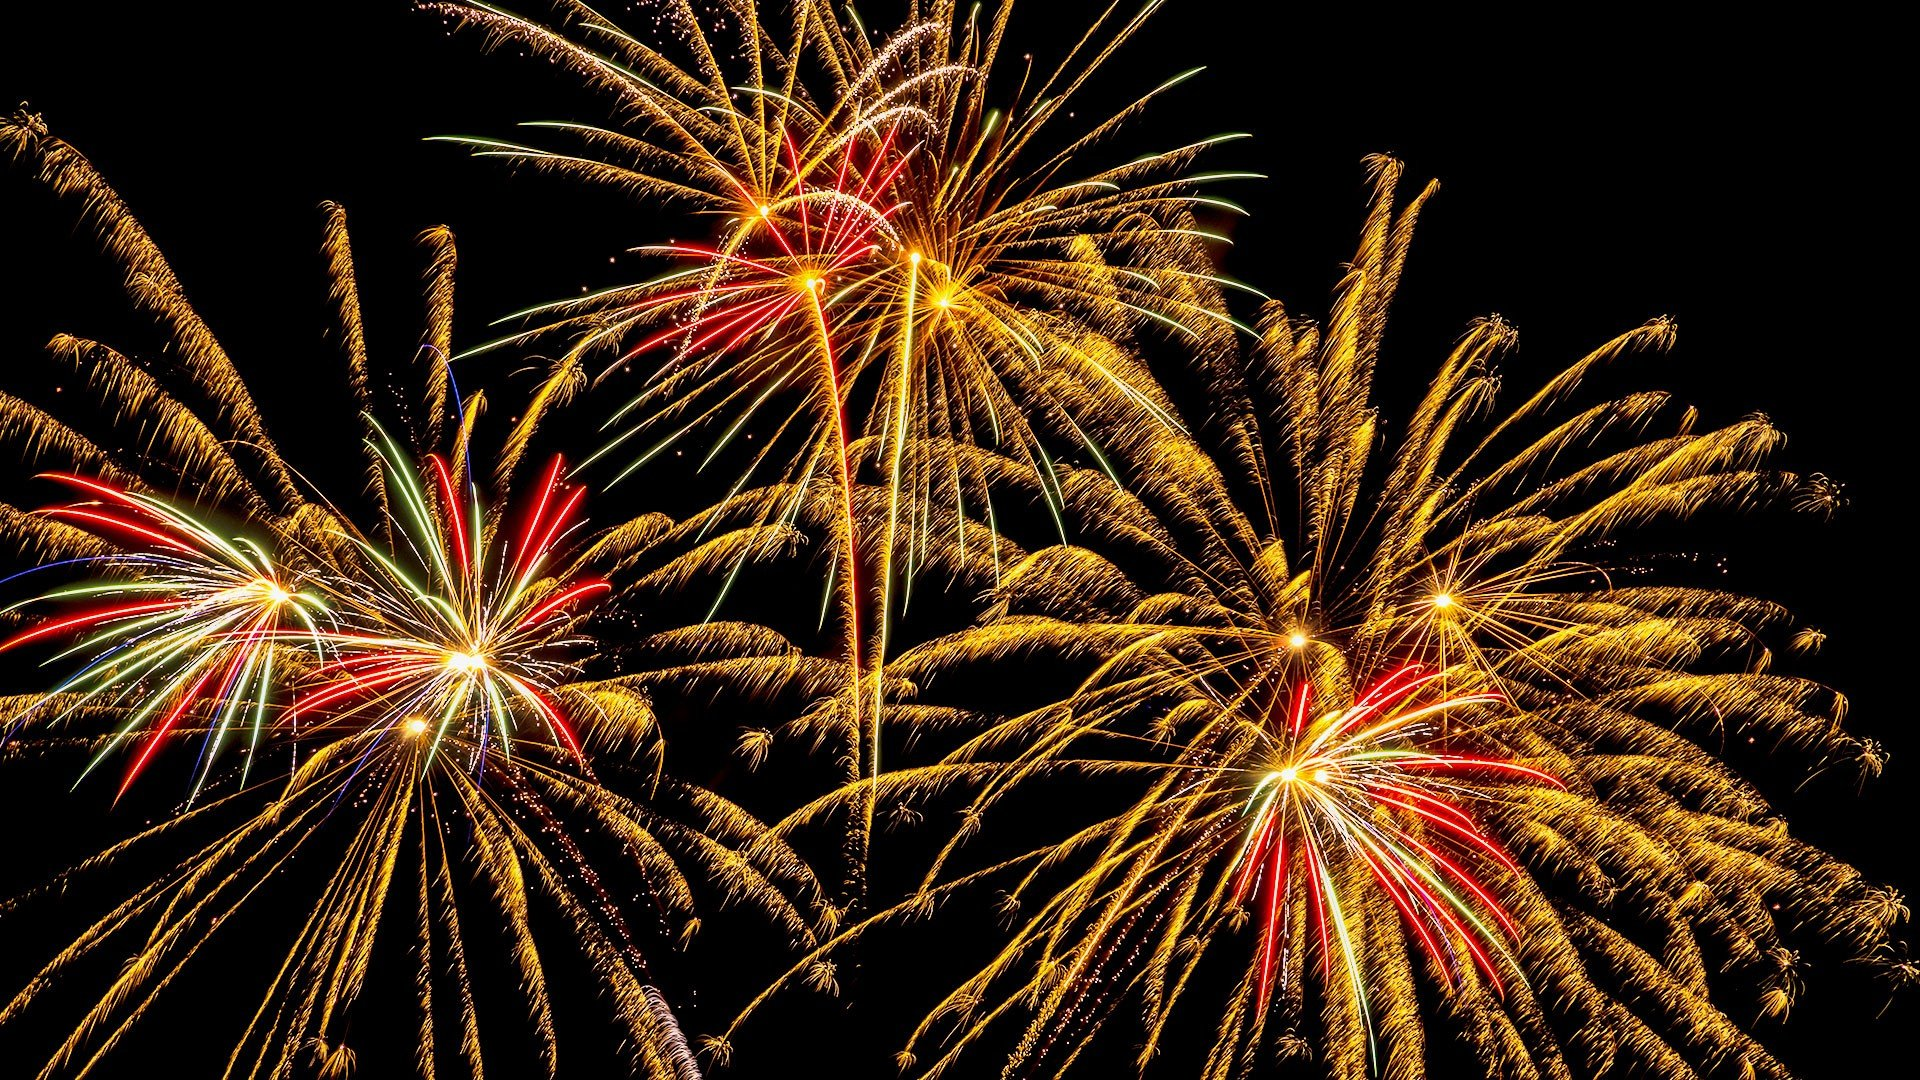 Get fired up for fireworks   Photofocus